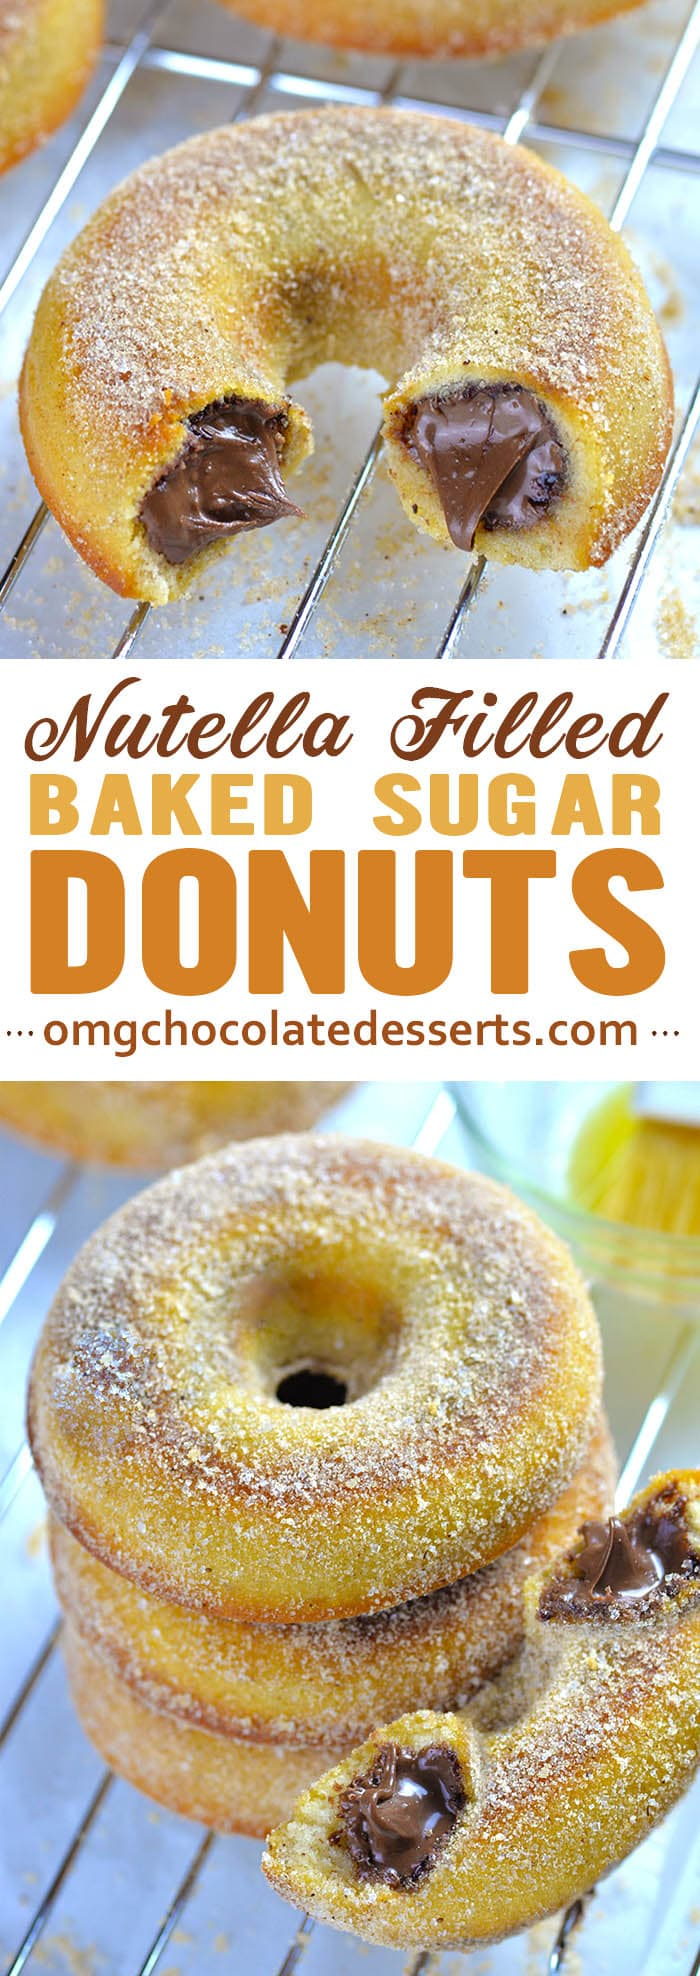 Homemade baked donuts overloaded with gooey Nutella filling and crunchy cinnamon-sugar coating are mind blowing treat for all donut lovers.